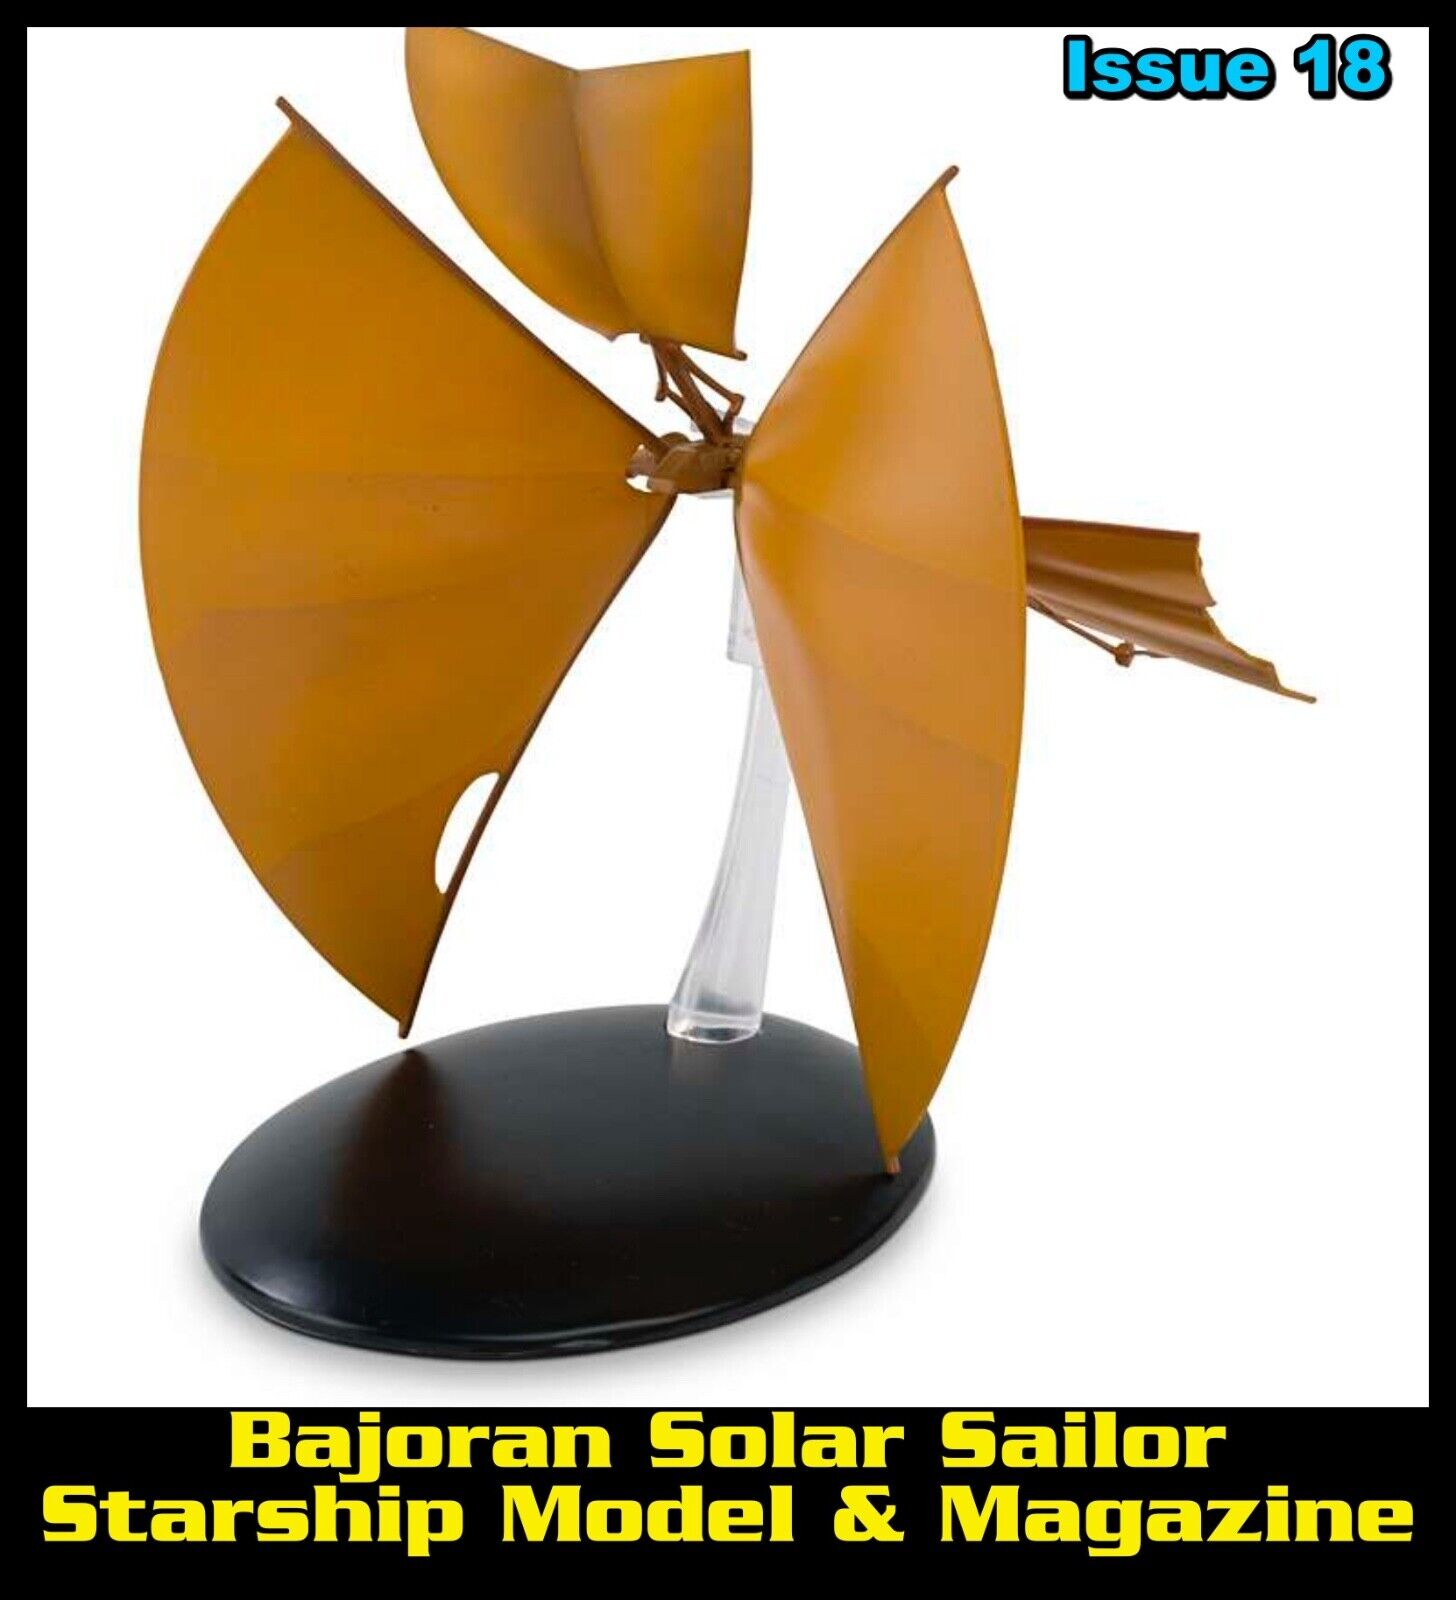 Issue 18: Bajoran Solar Sailor Model